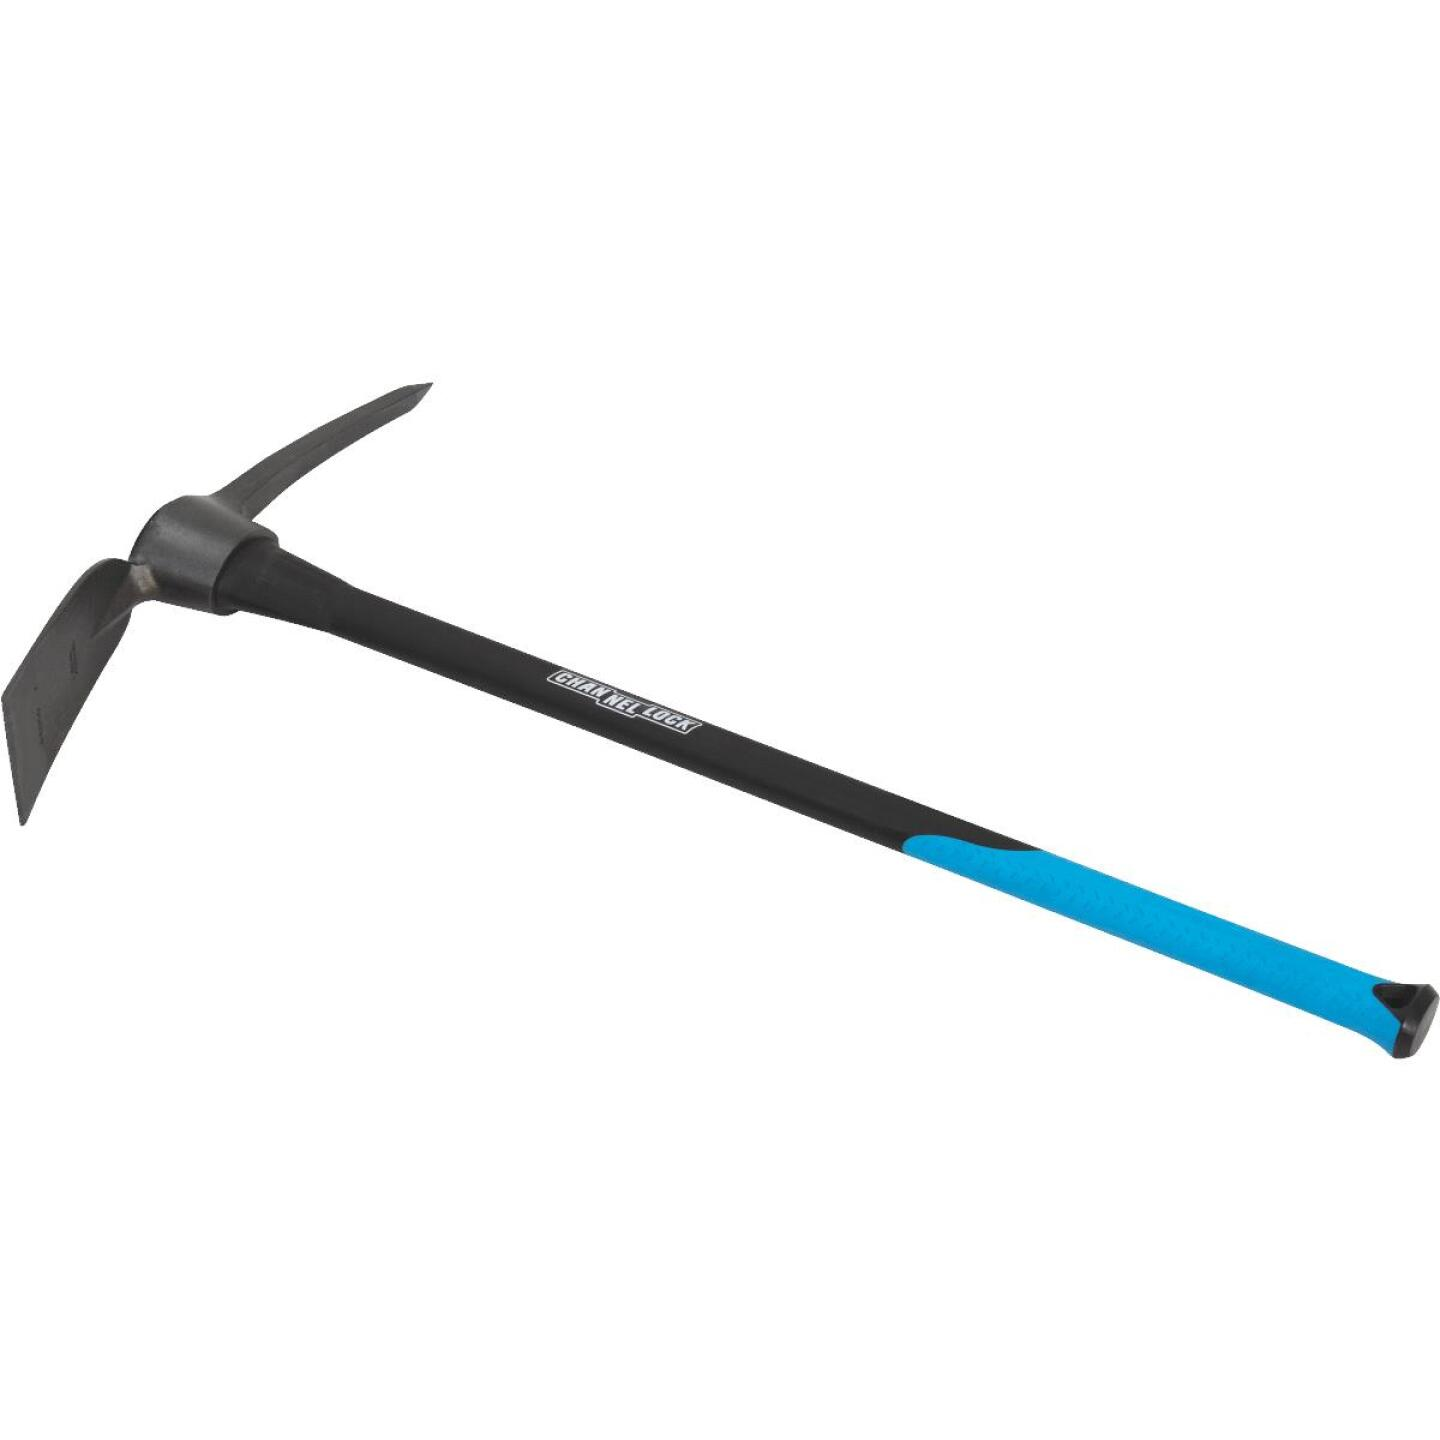 Channellock 5 Lb. Steel Pick Mattock with 36 In. Fiberglass Handle Image 1